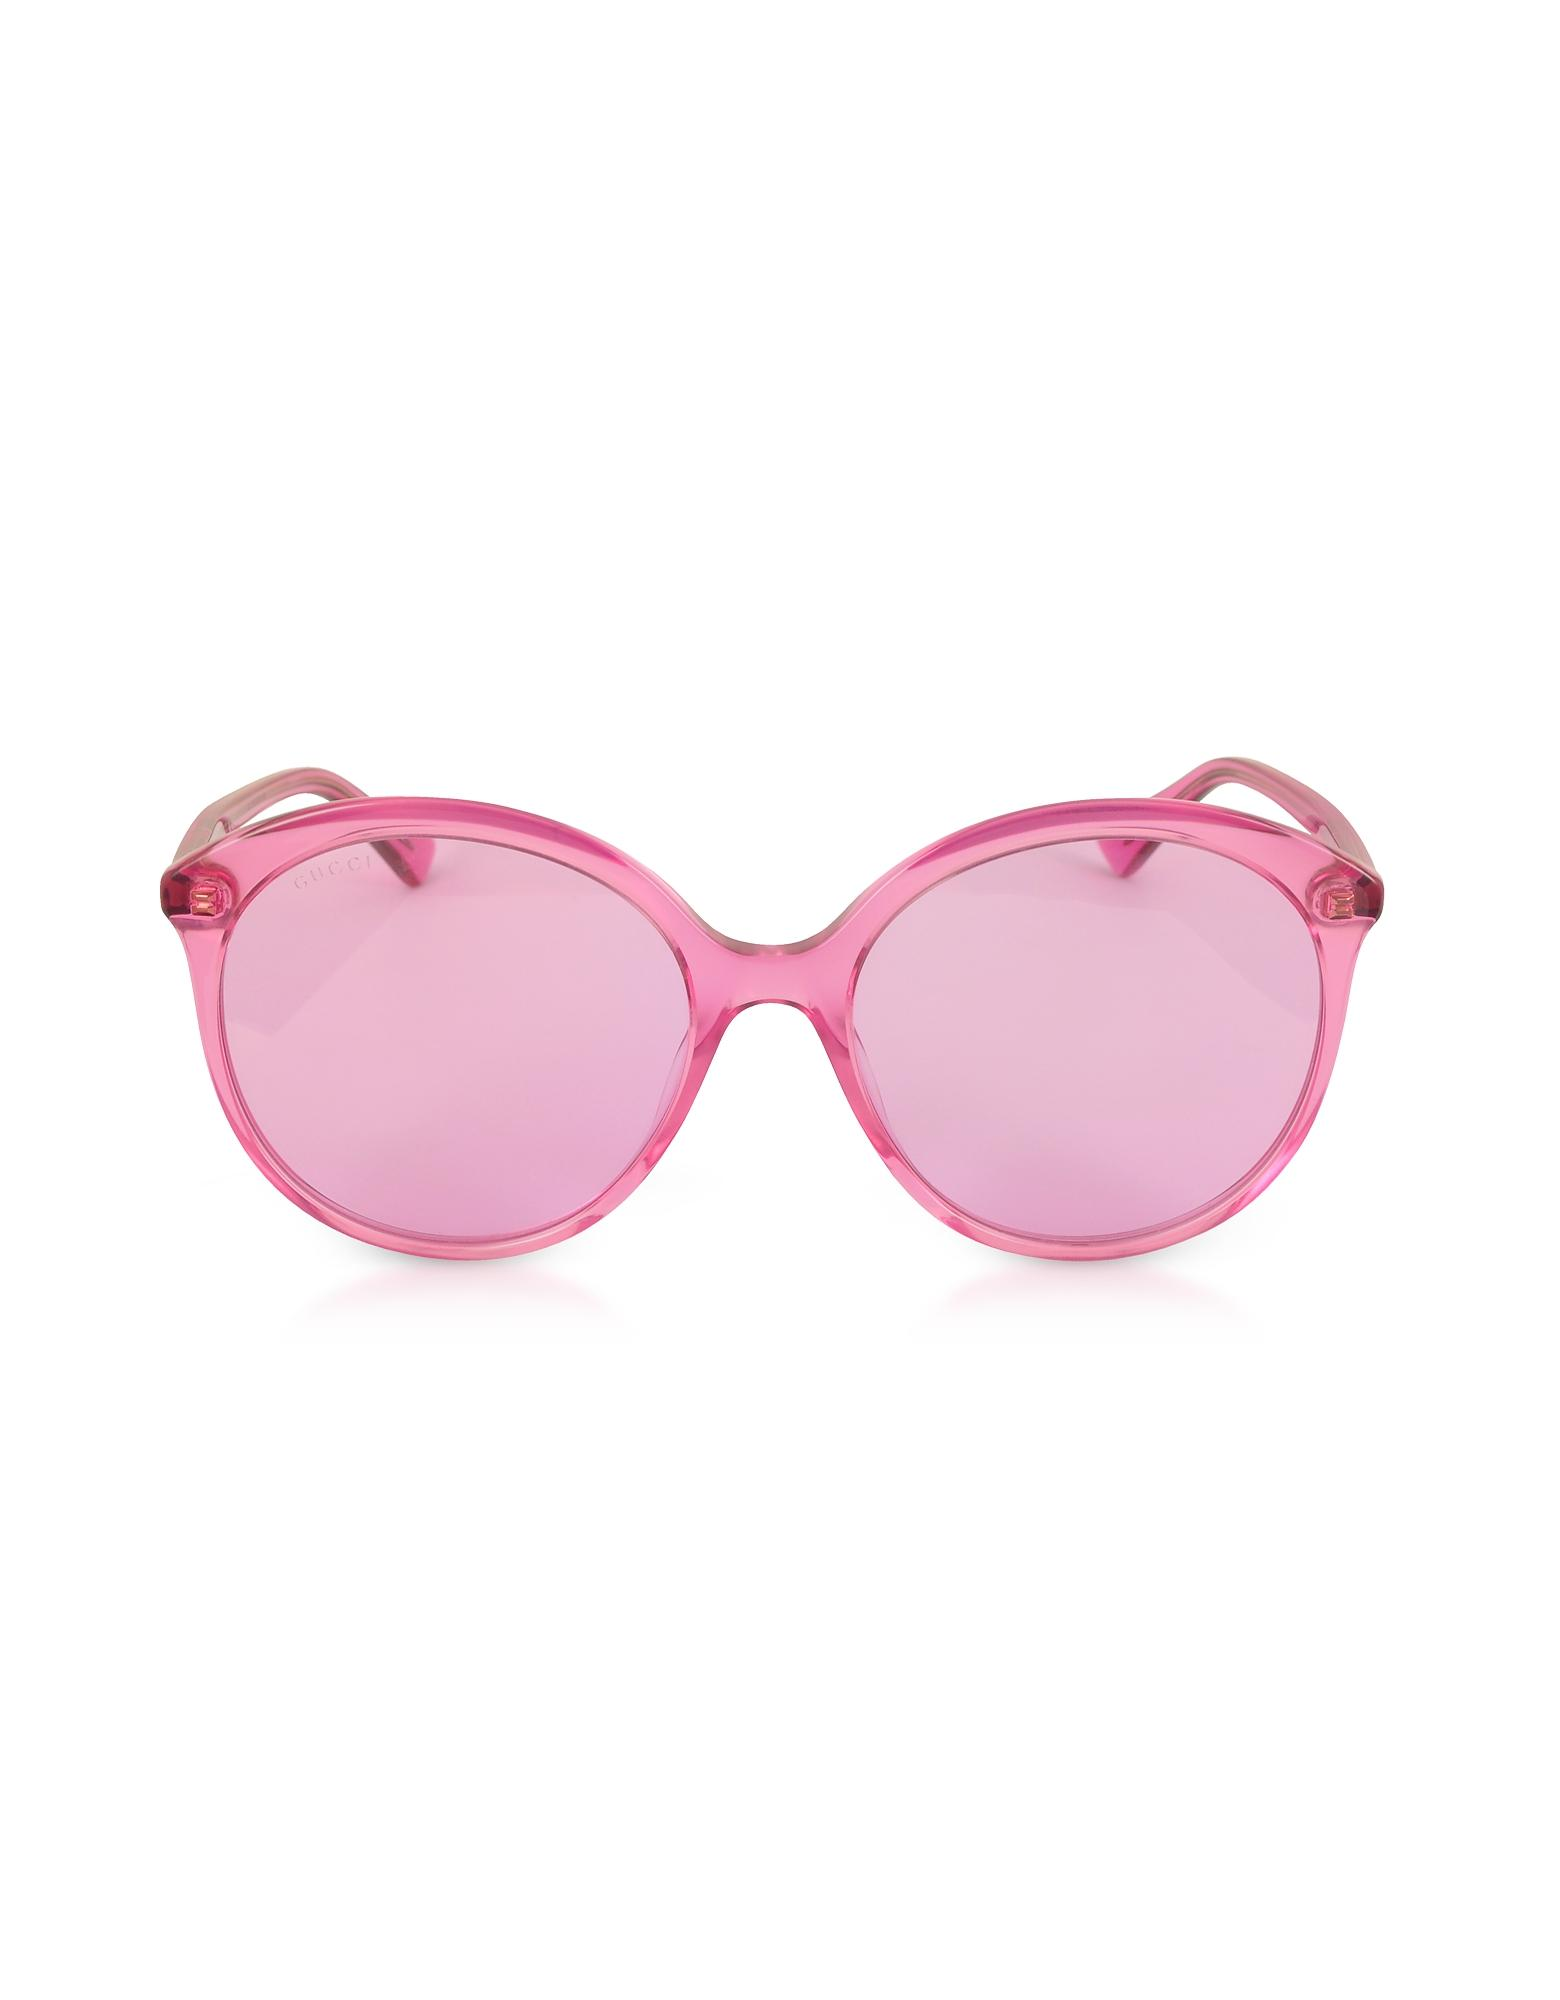 f0eb7f52d668b Gucci. Women s Pink GG0257S Specialized Fit Round-frame Transparent Fuchsia  Acetate Sunglasses